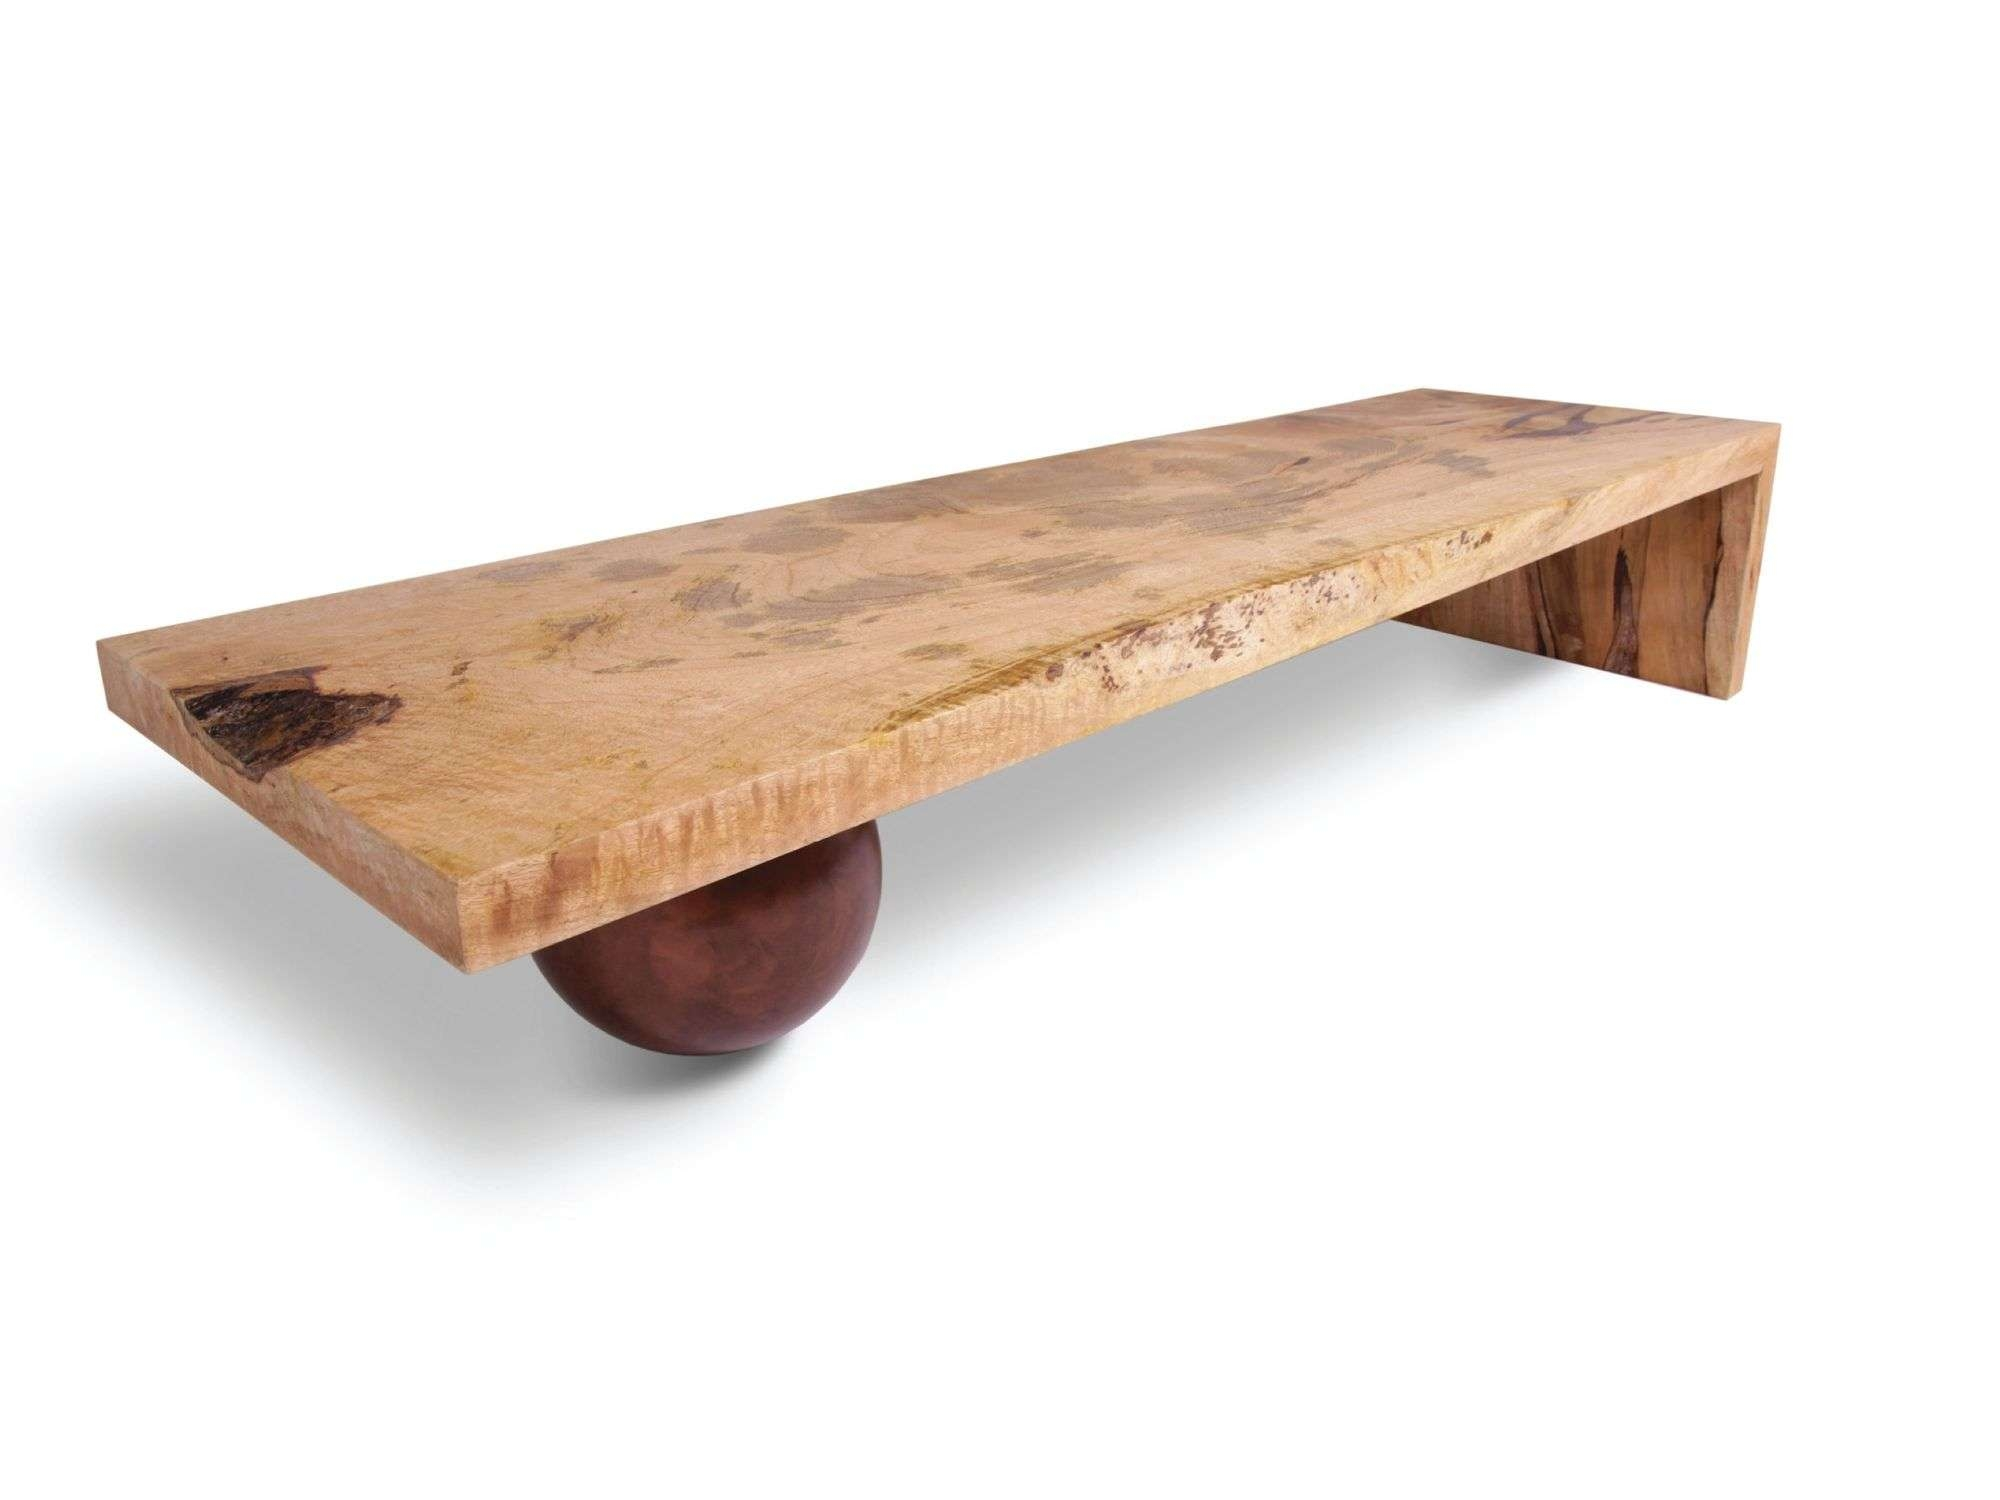 Mesmerizing Low Square Unpainted Reclaimed Wood Coffee Table With With Regard To Famous Low Wood Coffee Tables (View 11 of 20)